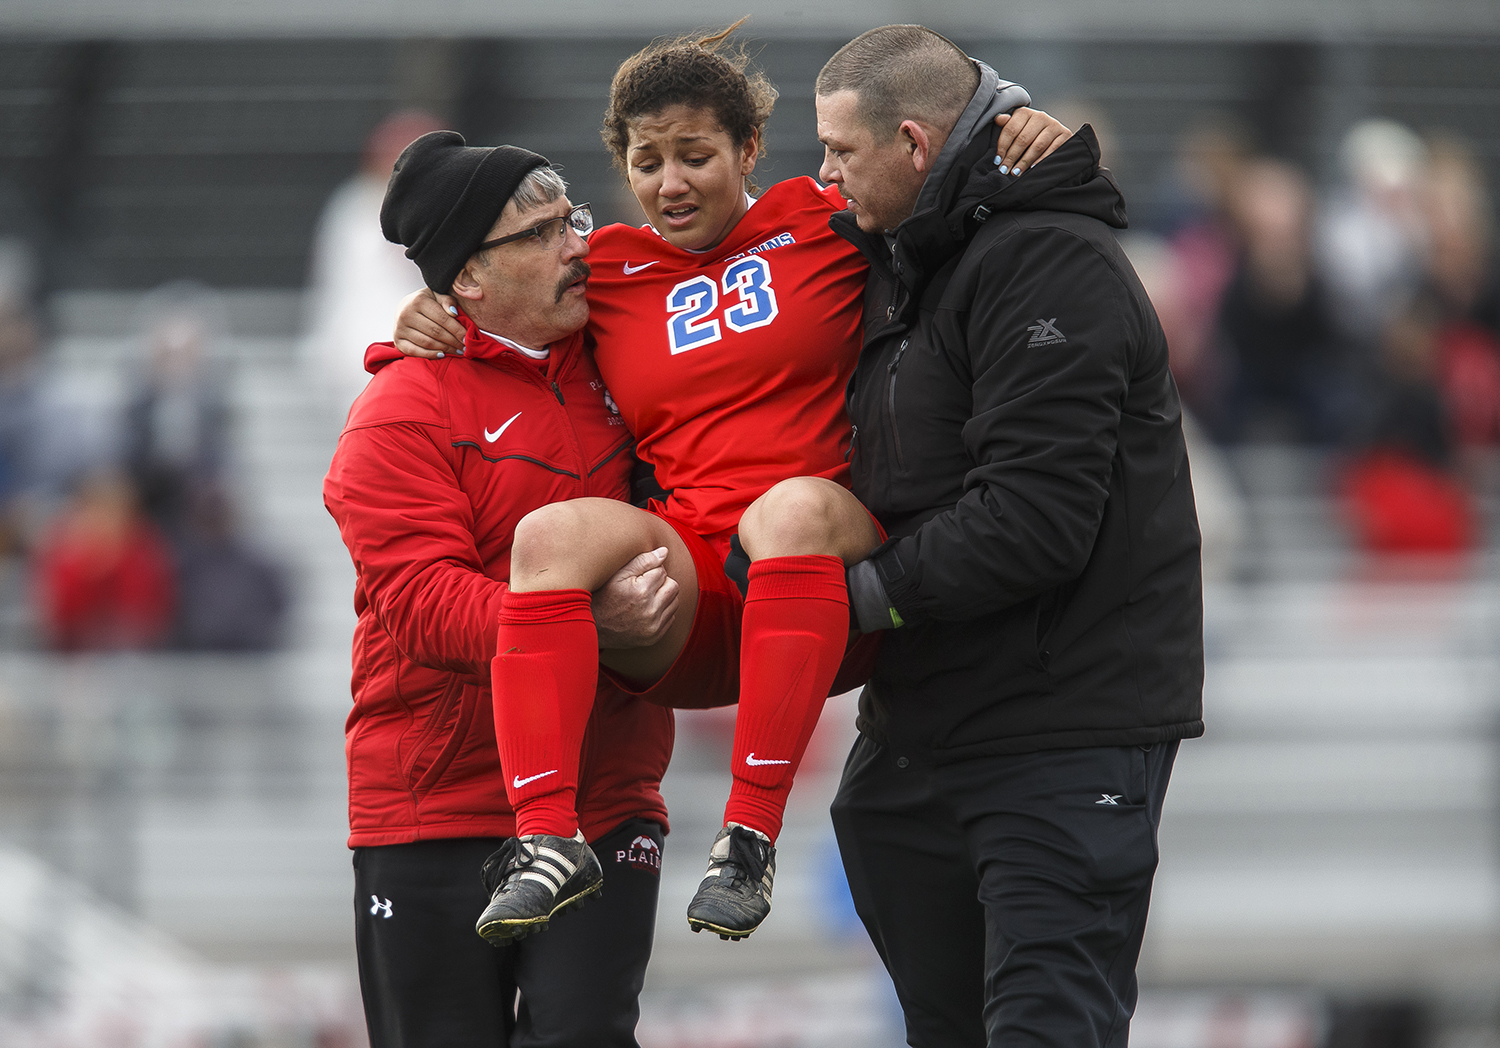 Pleasant Plains Brooklyn Blackwell (23) is carried off the field after an injury as the Cardinals take on Glenwood in the second half at Glenwood High School, Thursday, April 5, 2018, in Chatham, Ill. [Justin L. Fowler/The State Journal-Register]